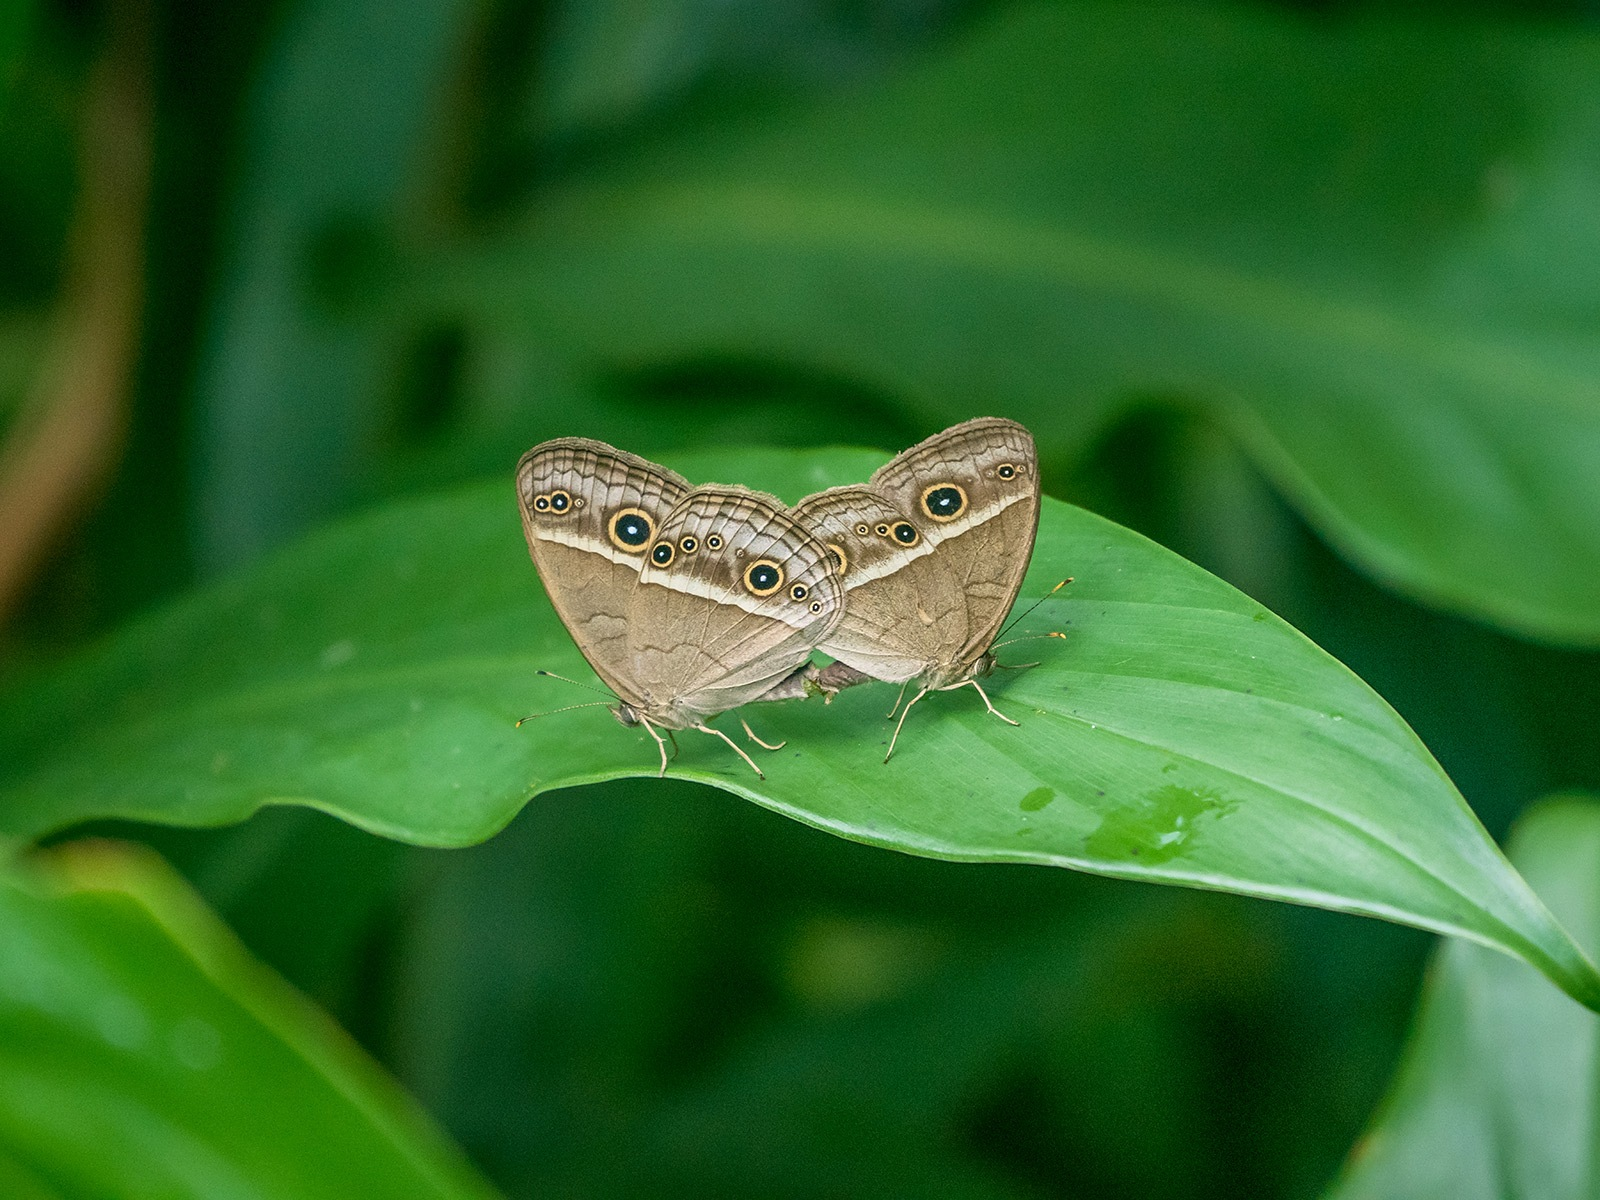 The Mating Butterflys by Dark Tower